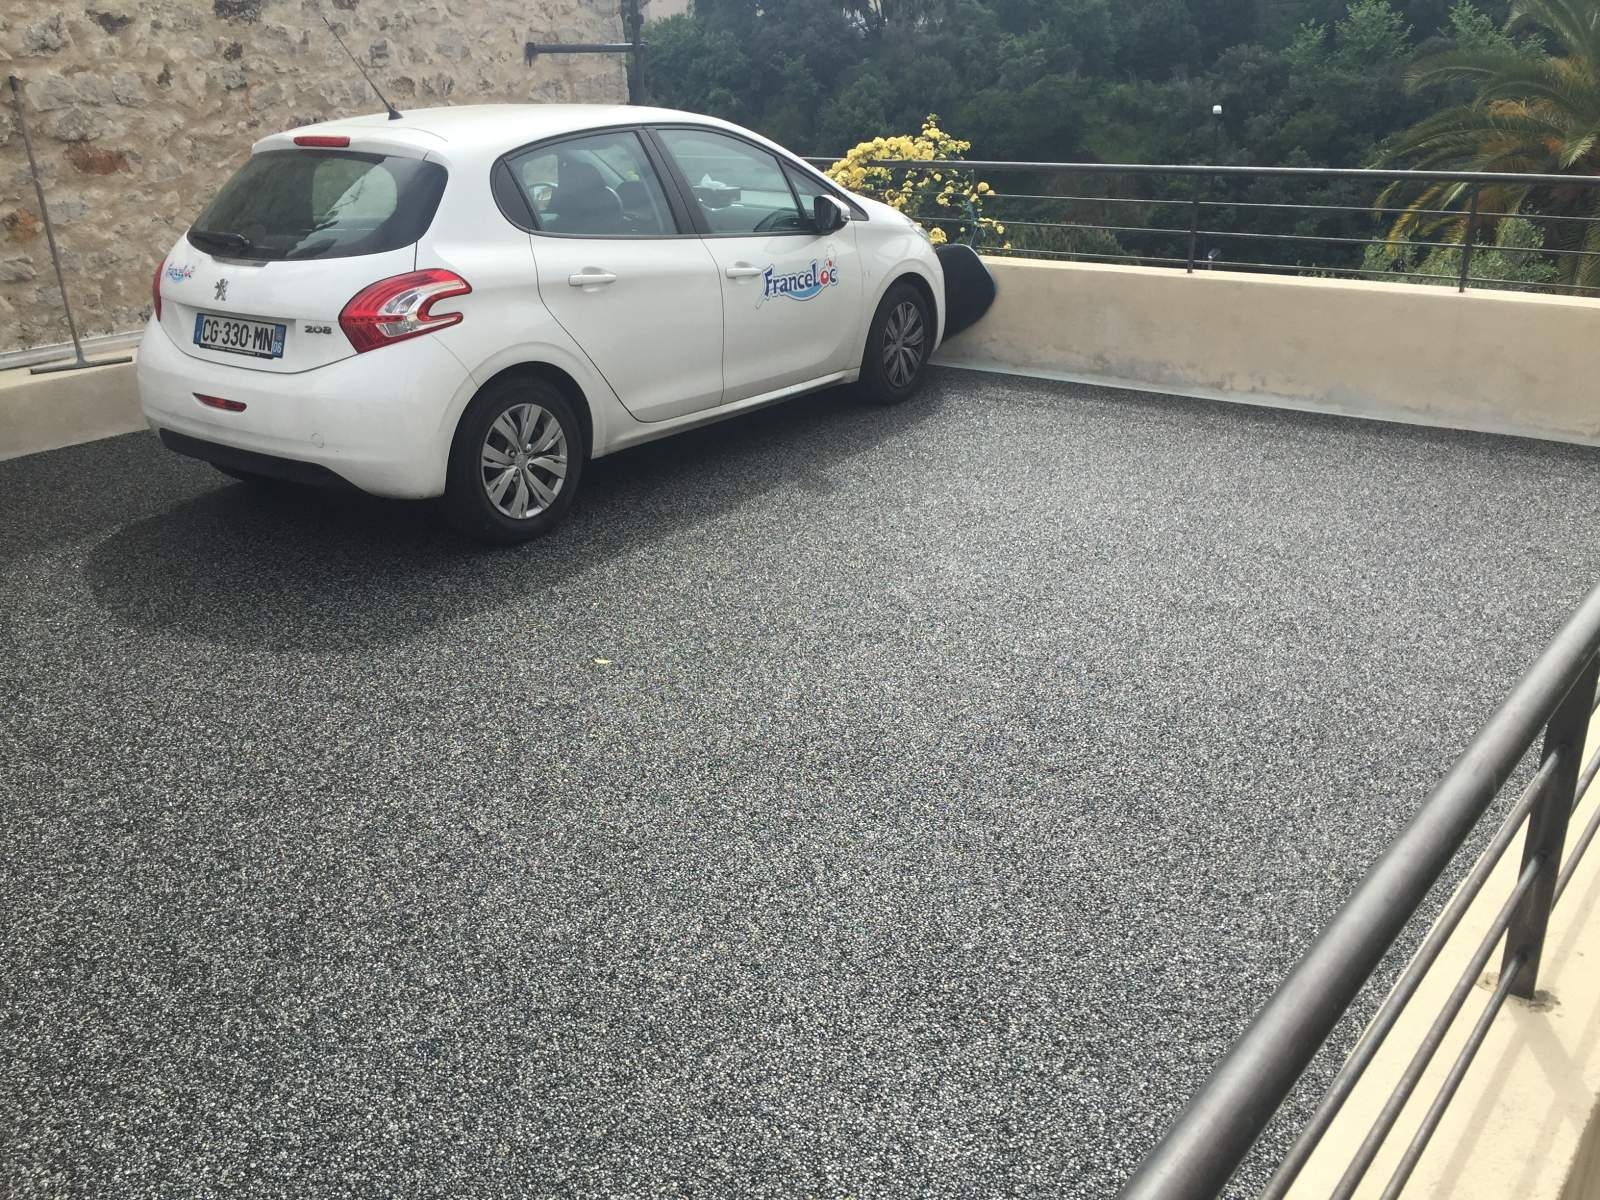 Sur cannes parking v hicule en agr gats de marbre et for Revetement de sol exterieur carrossable